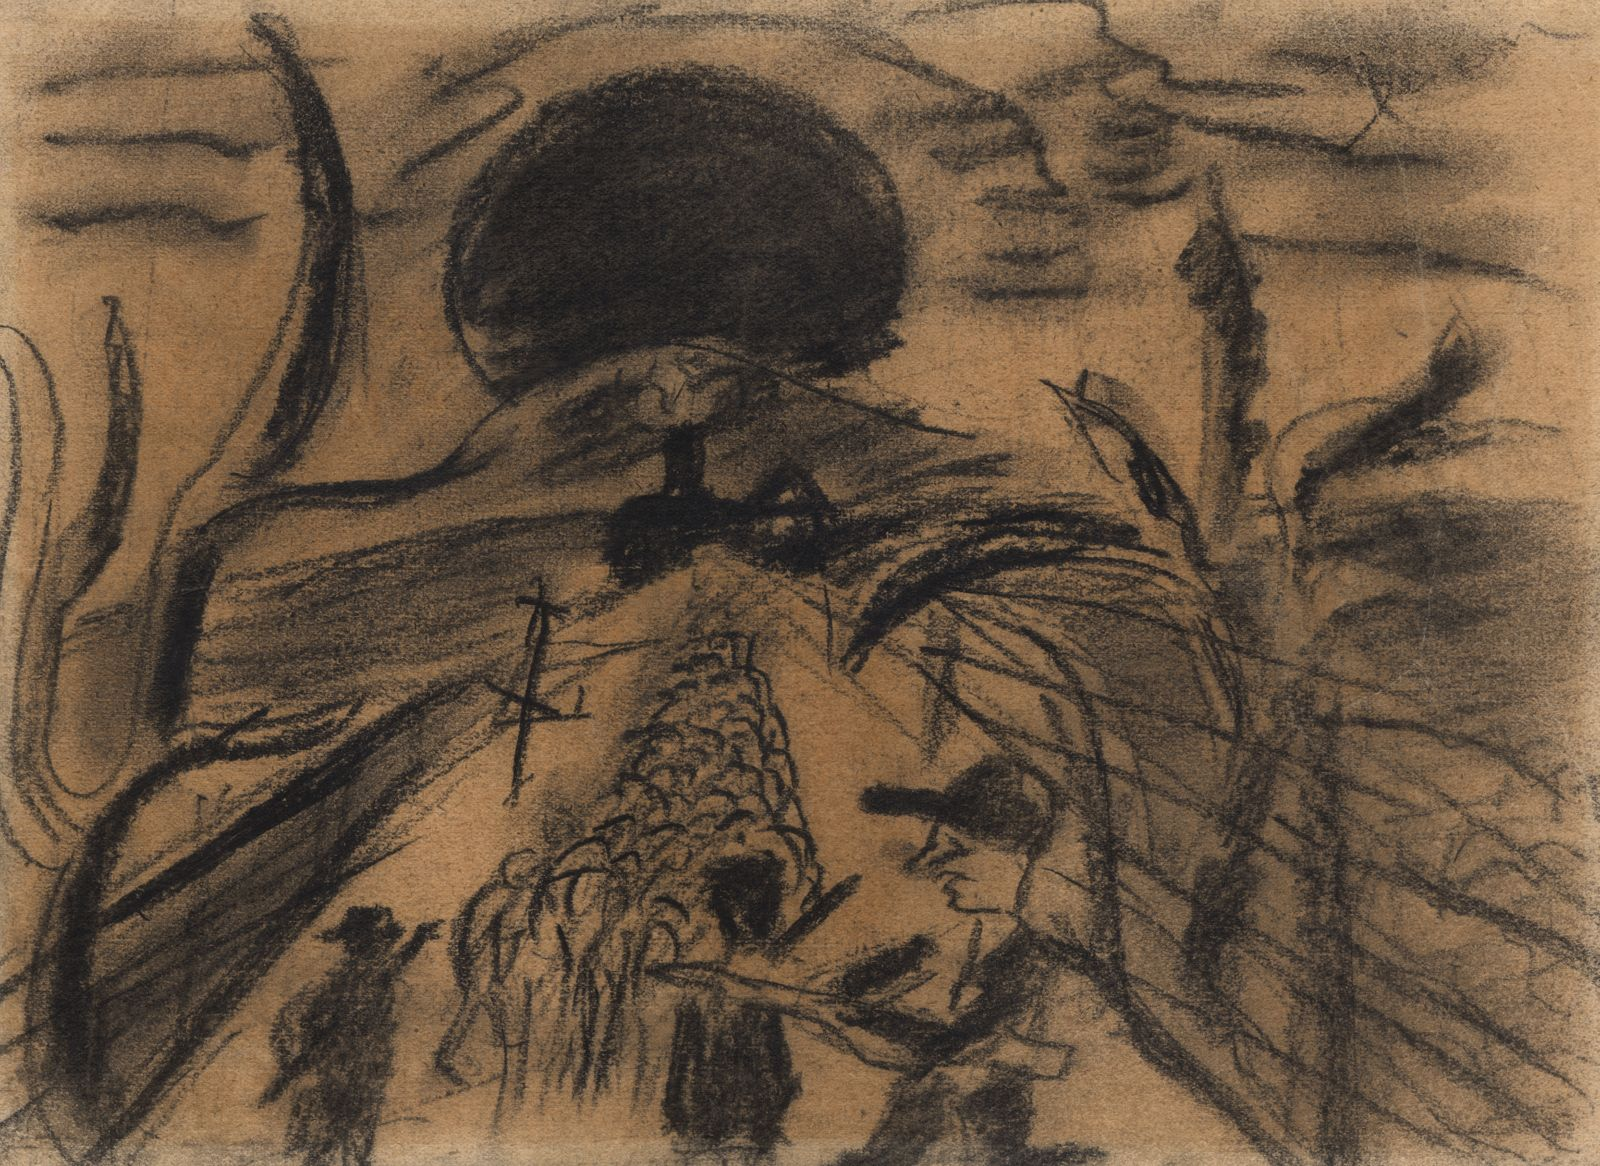 Yehuda Bacon - Recollections from Auschwitz ? The Transport Arrives, 1945